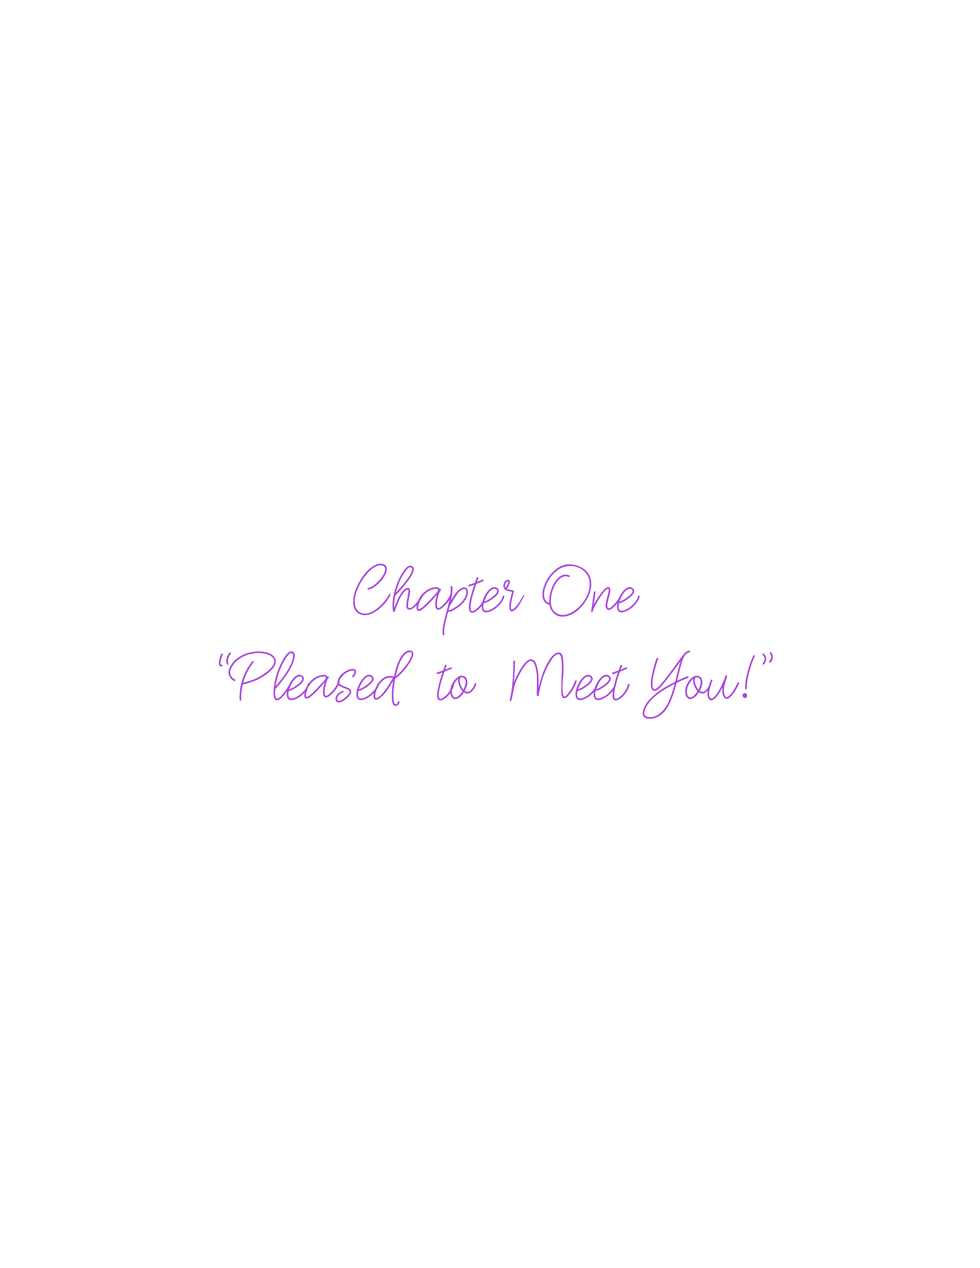 Chapter One: Pleased to Meet You!